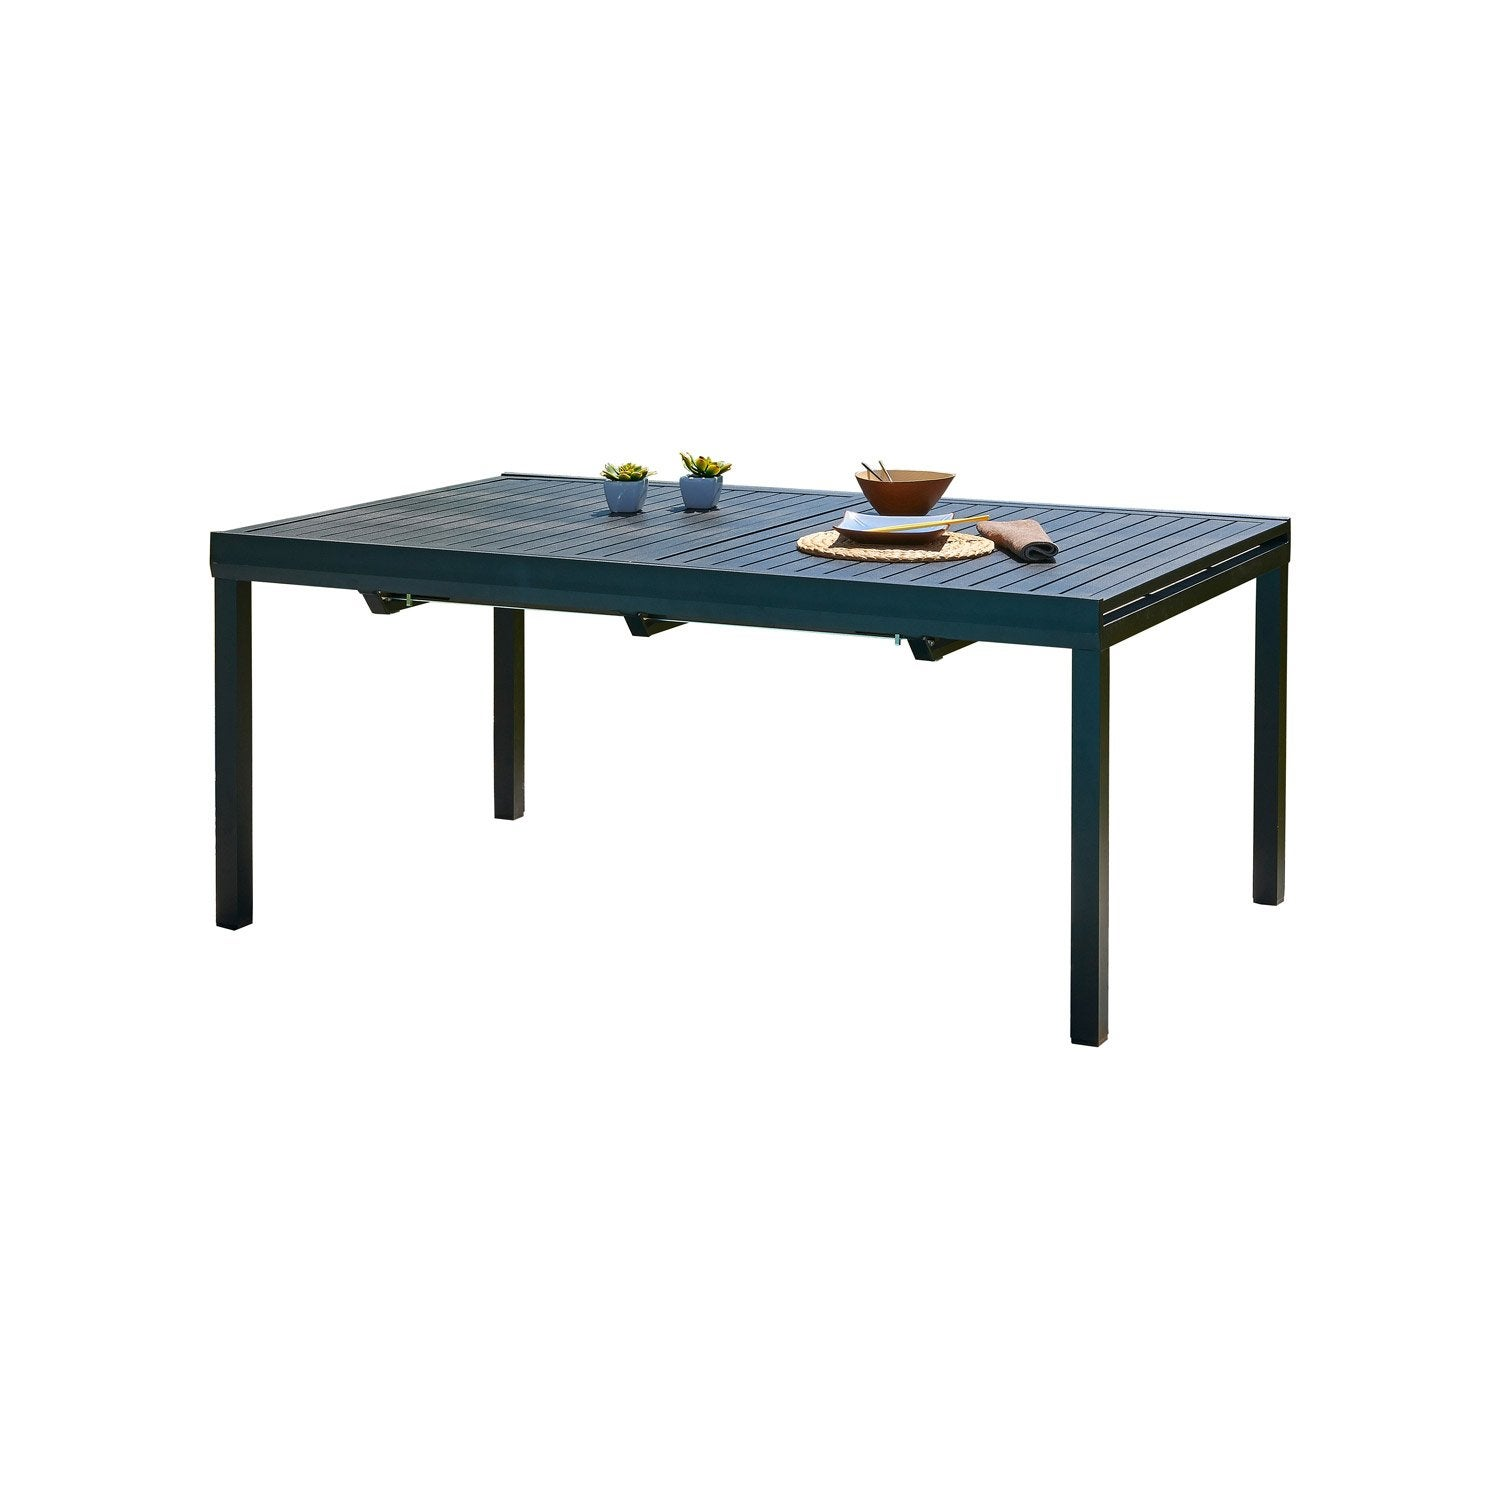 table de jardin miami rectangulaire noir 10 personnes leroy merlin. Black Bedroom Furniture Sets. Home Design Ideas